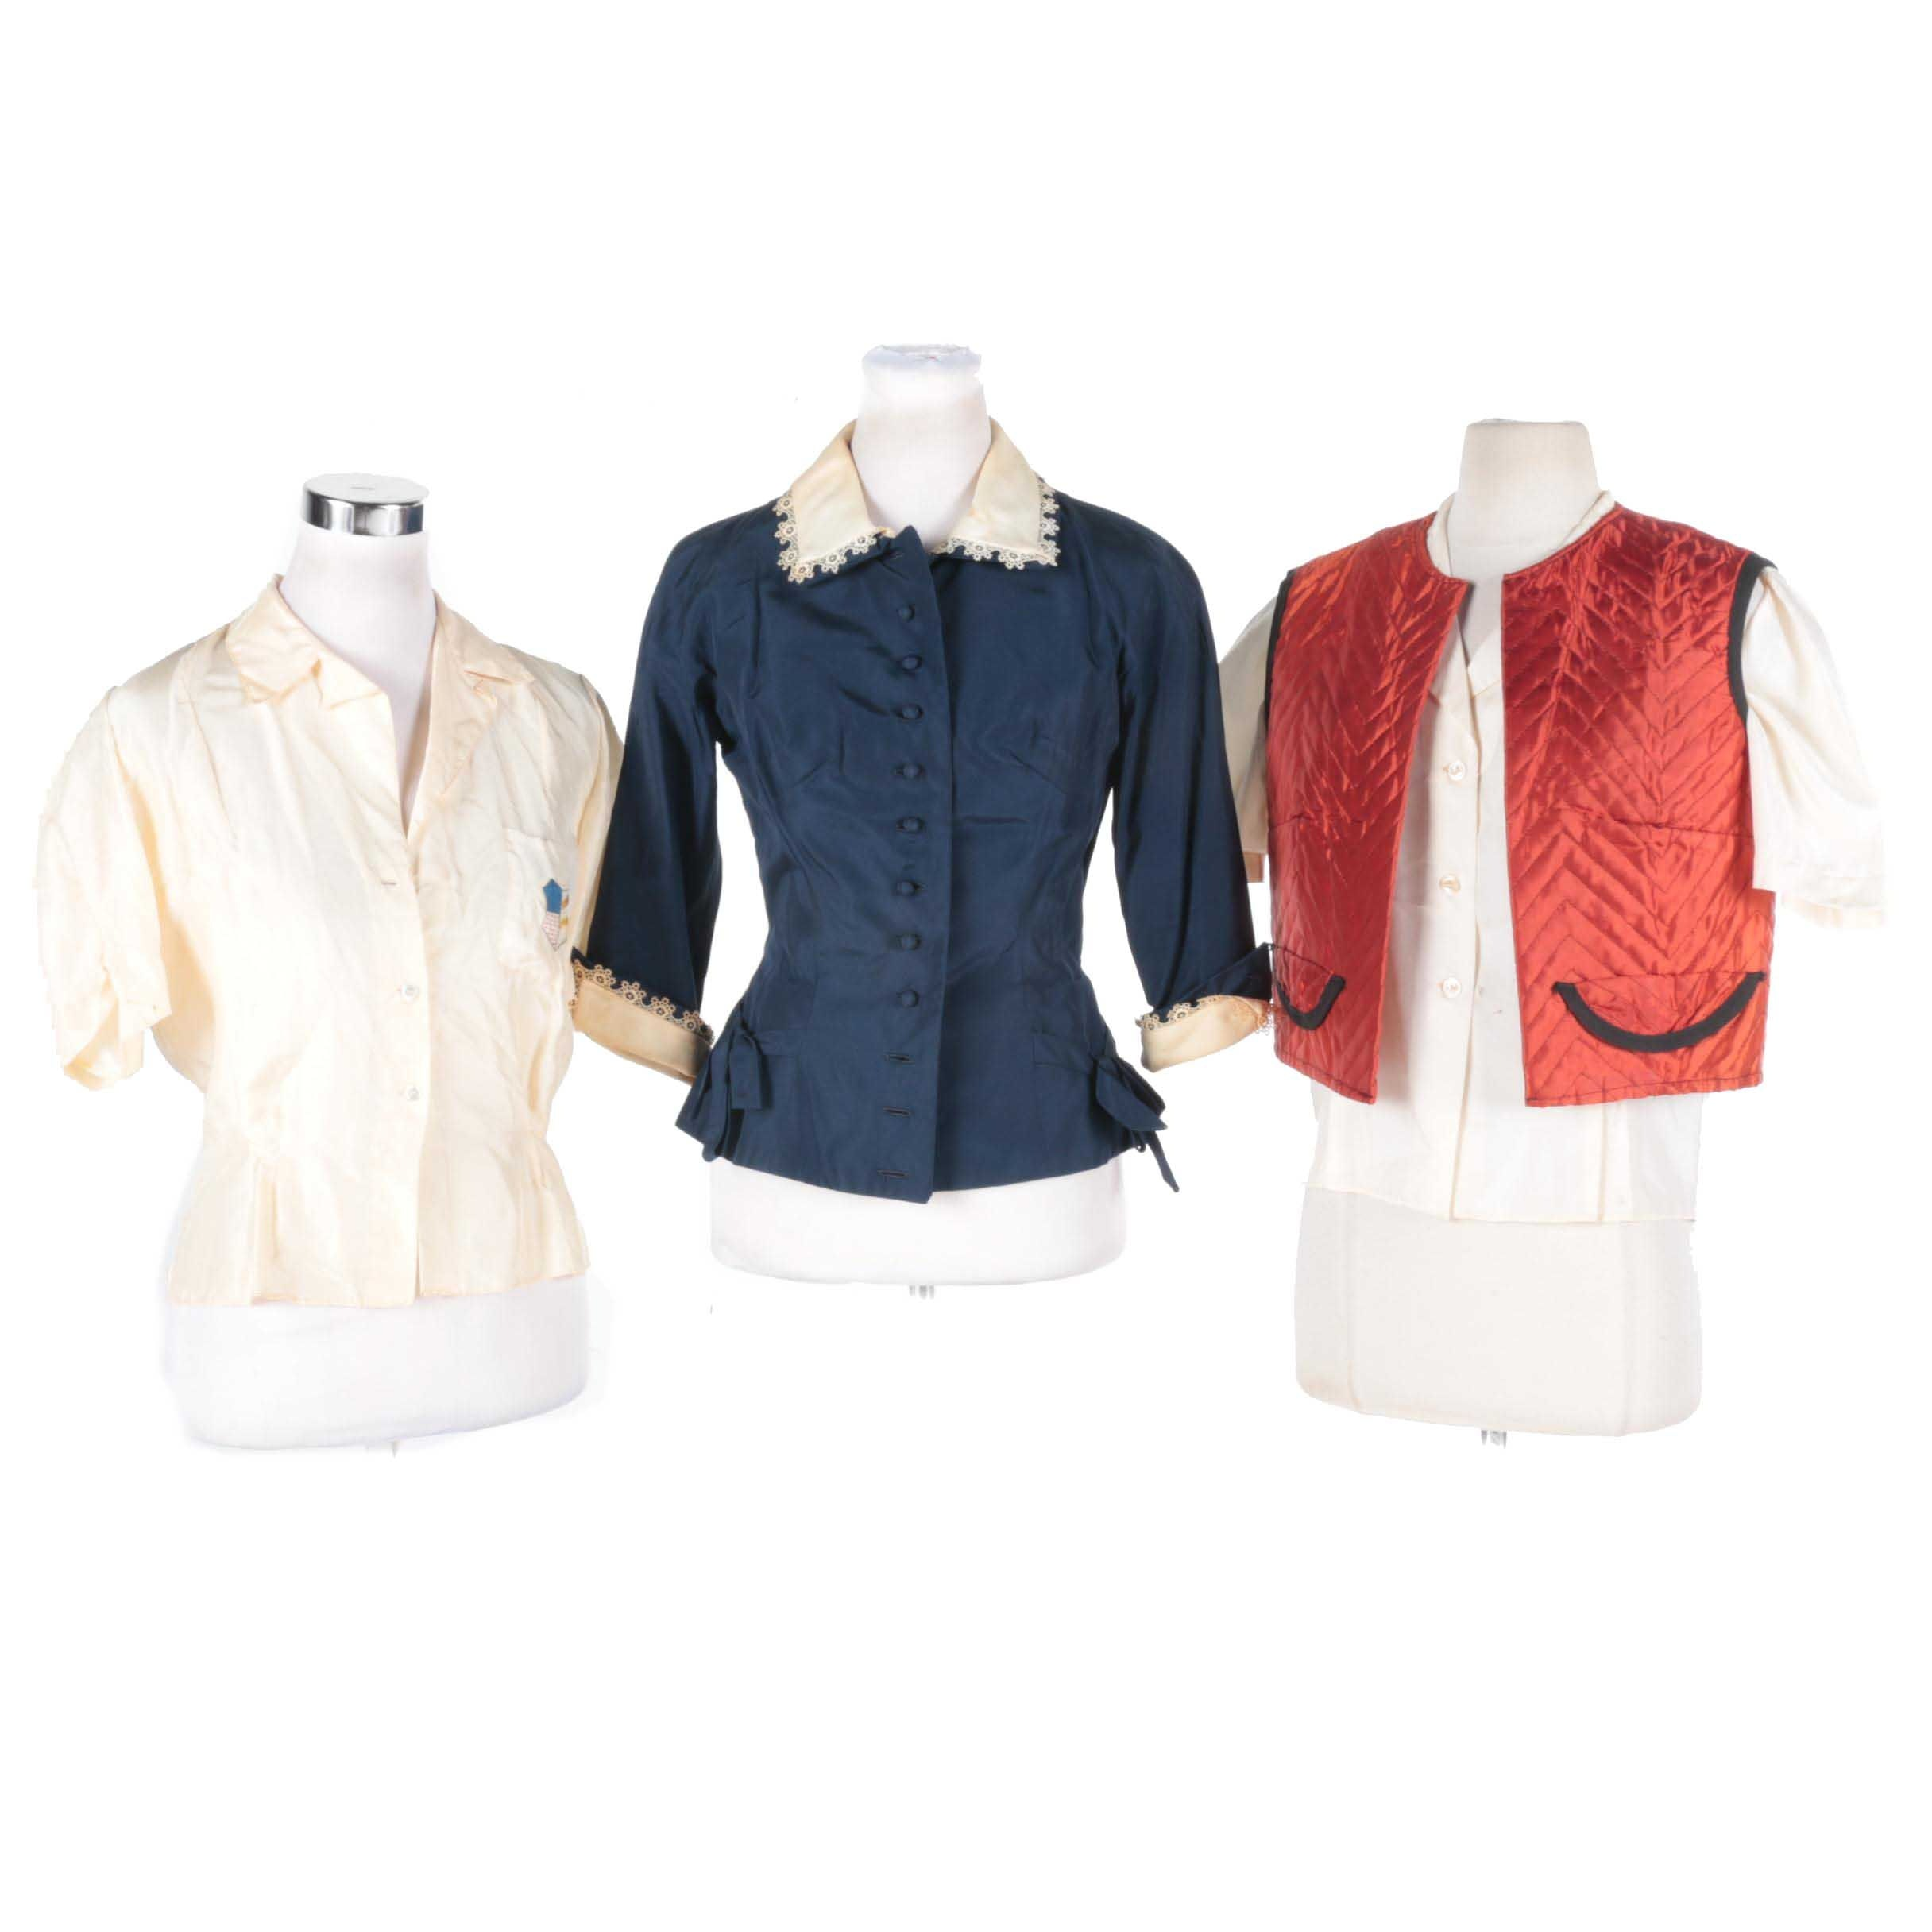 Women's Vintage Tops Including Best & Co.